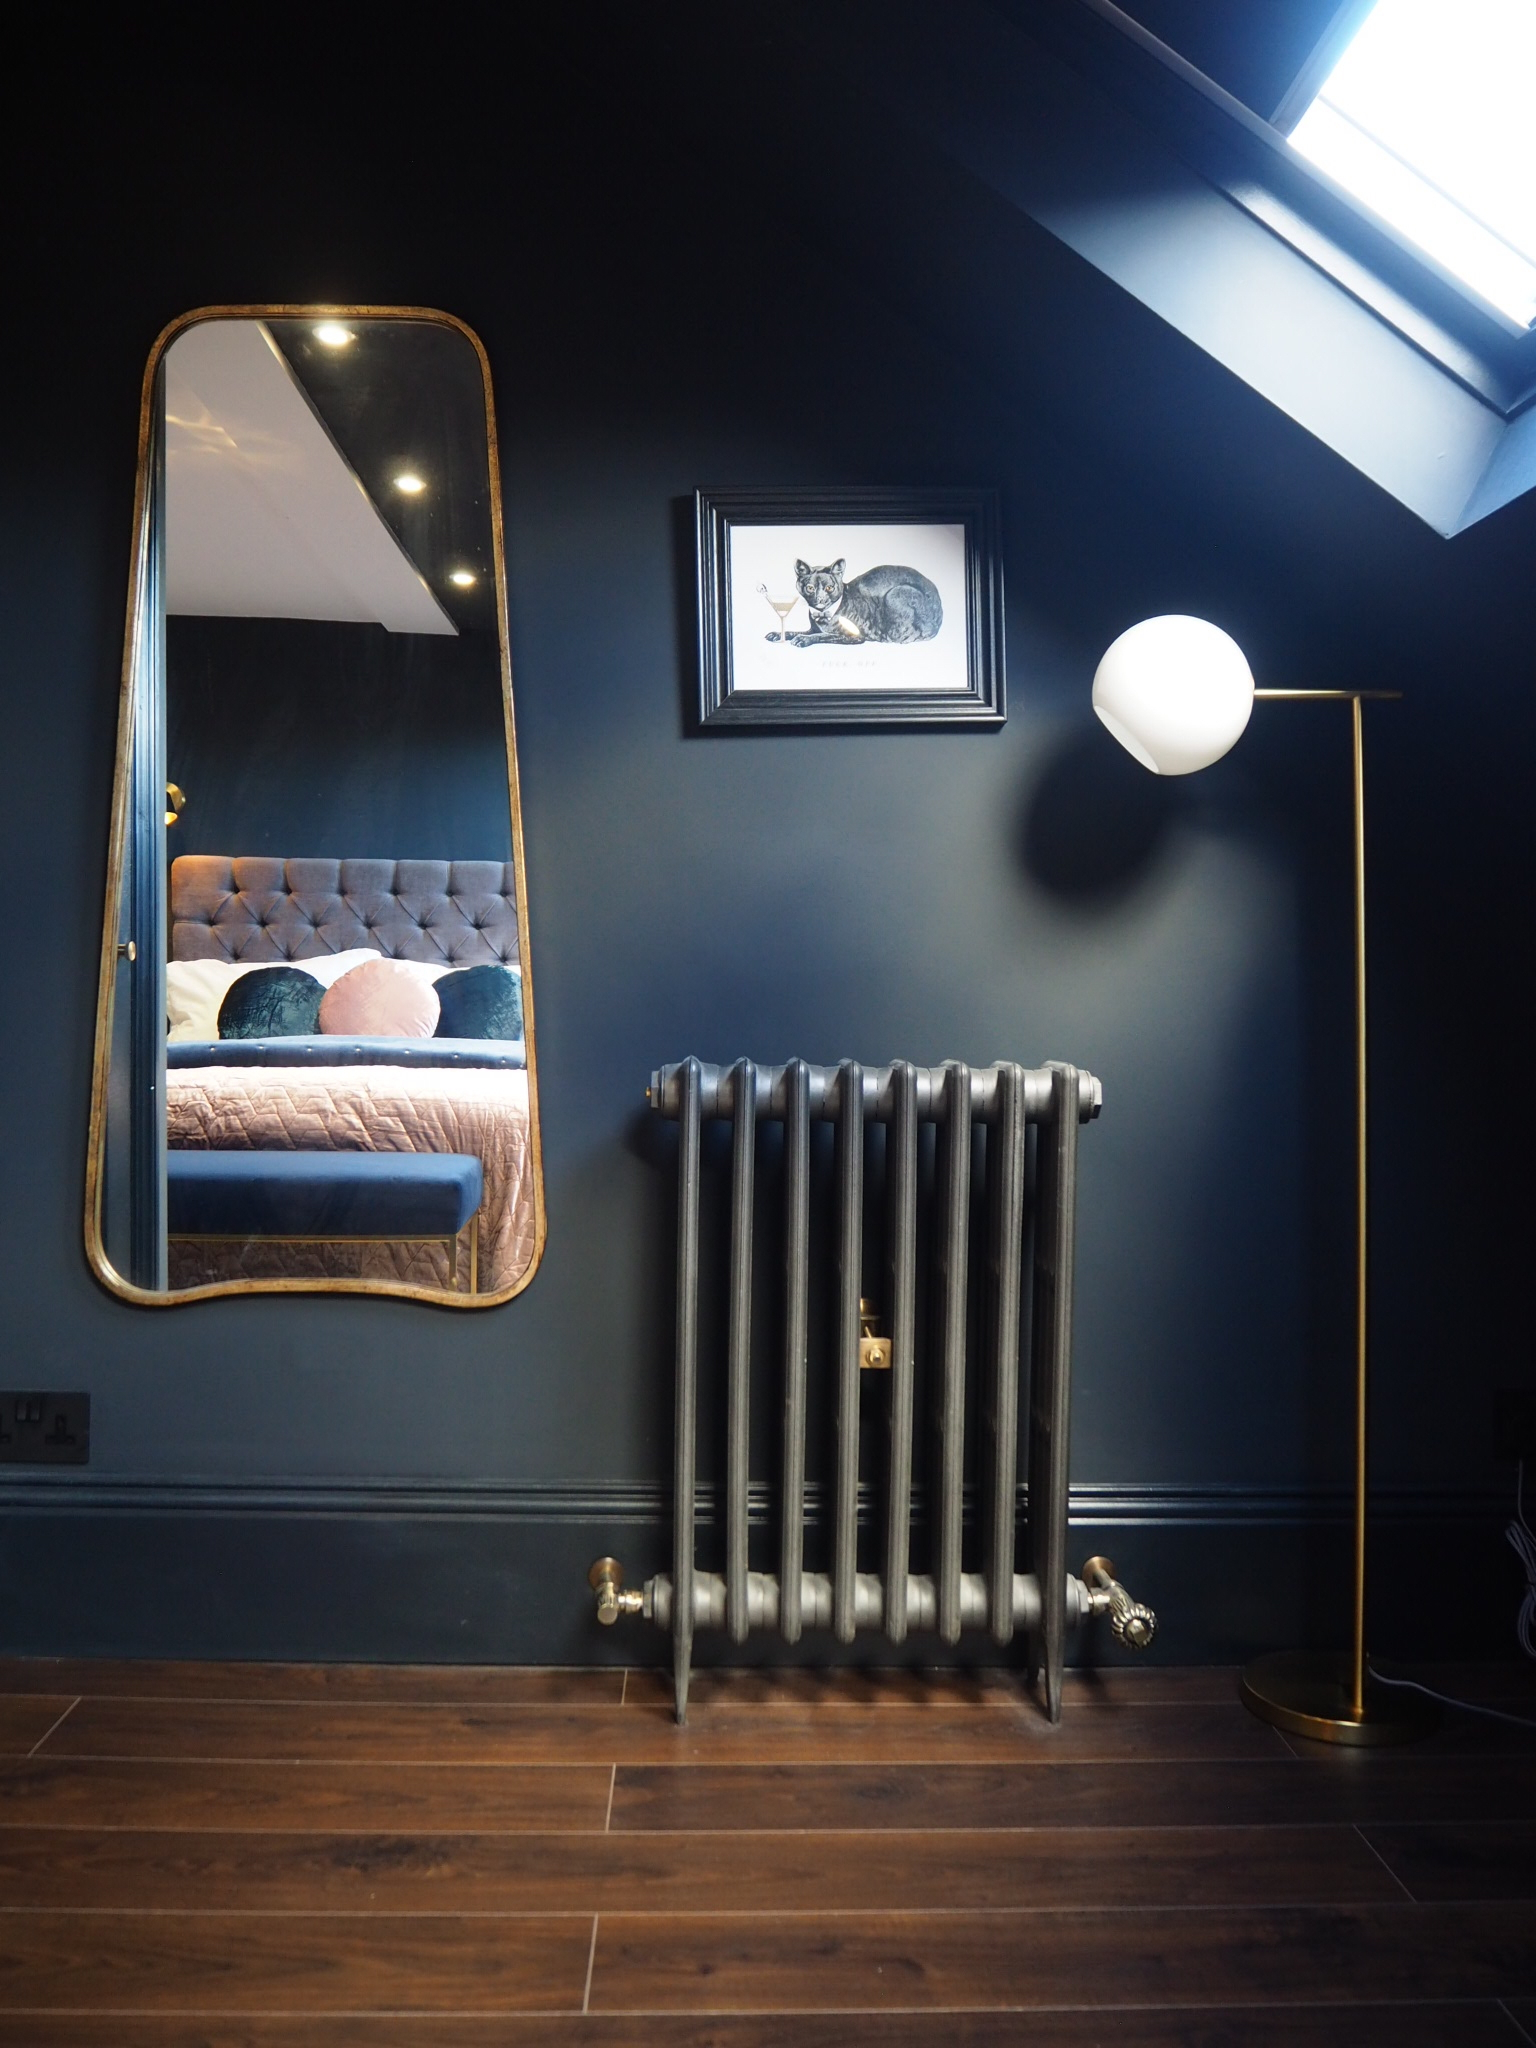 Curva mirror from   Select mirrors   £99, Cat limited edition print from   Divine Savages   £45, cast iron radiators from the   Cast iron radiator company   ,    Staggered floor lamp     £199, from West Elm.